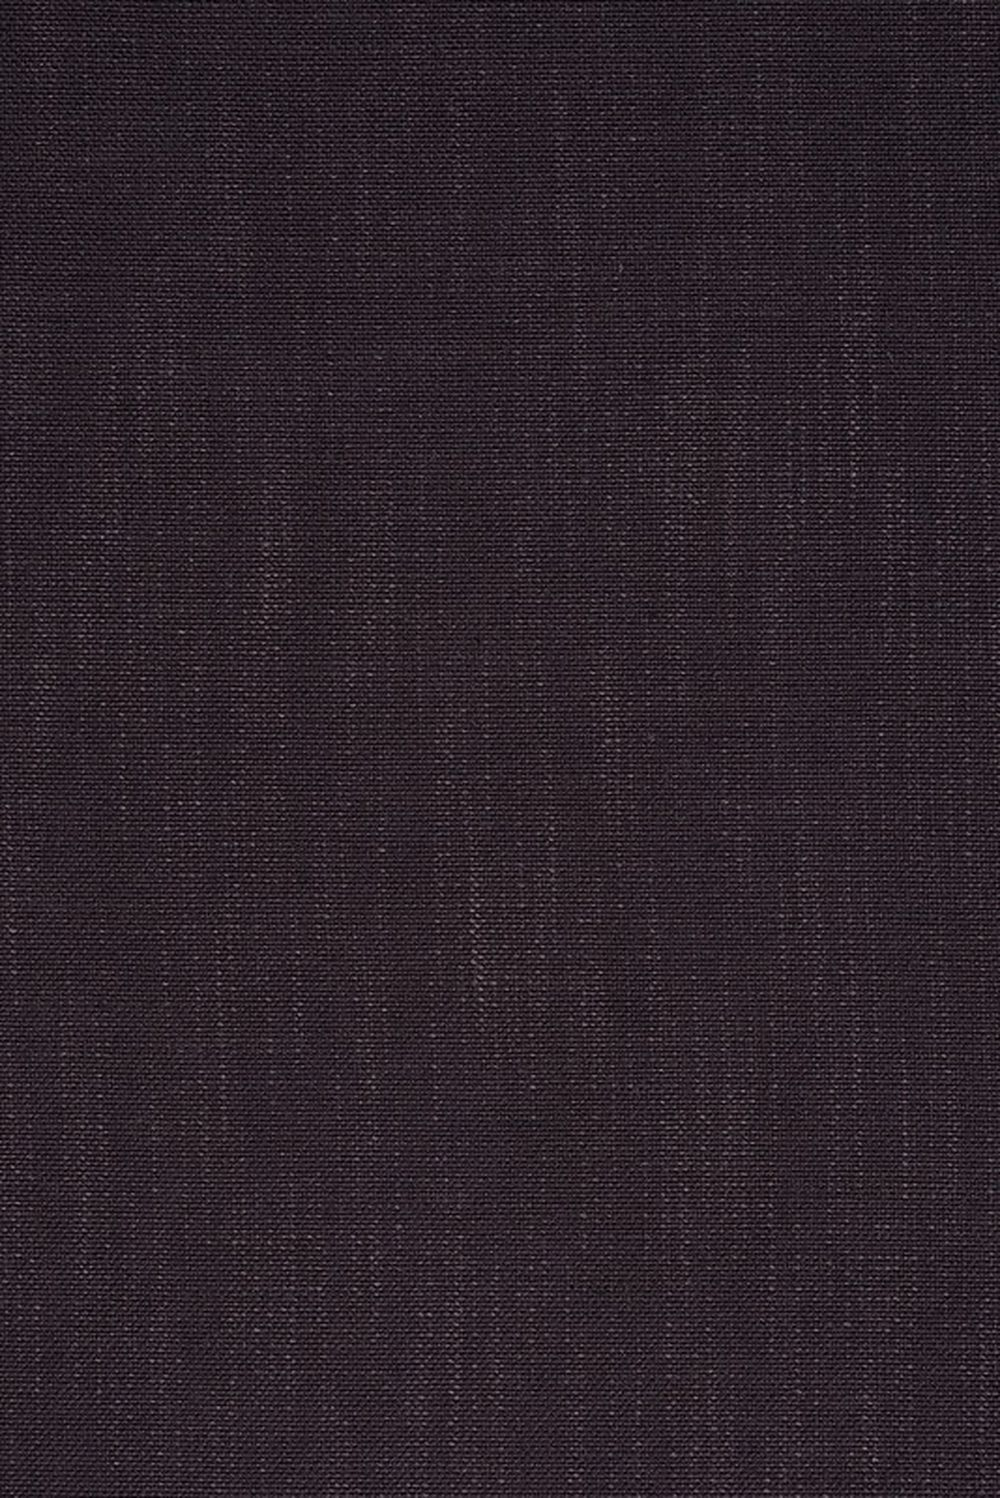 Photo of the fabric Allium Blackberry swatch by Mokum. Use for Upholstery Heavy Duty, Accessory. Style of Plain, Texture